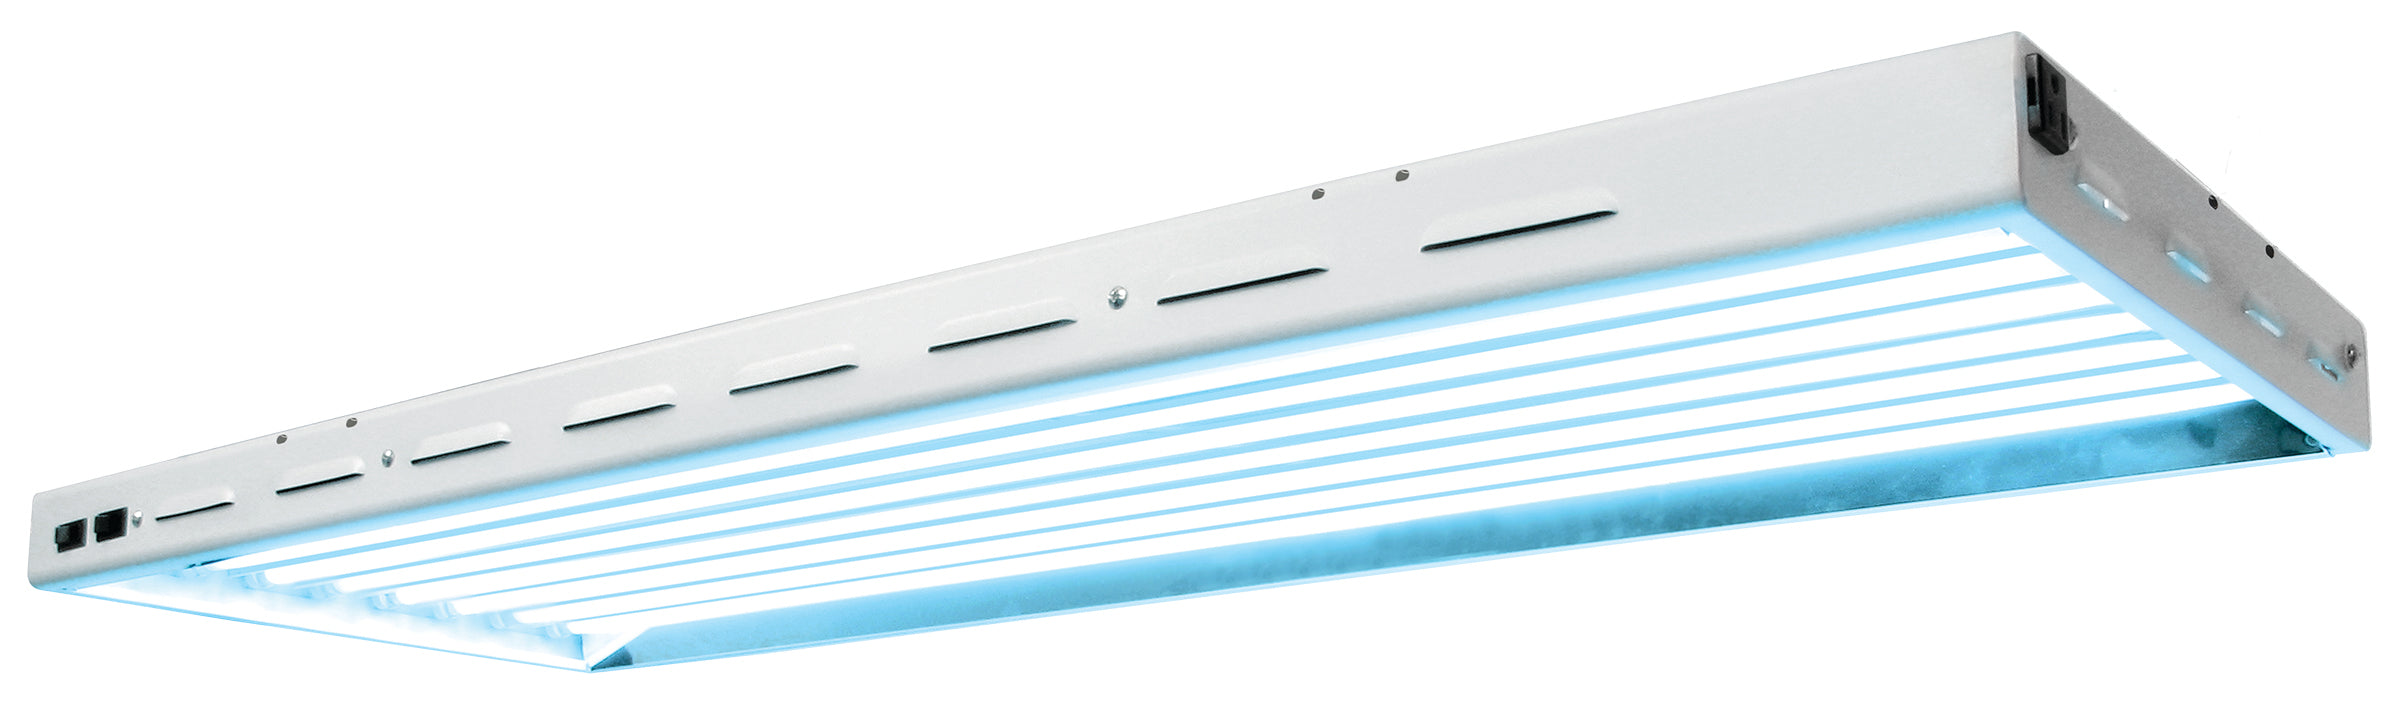 Sun Blaze T5 HO 48 - 4 ft 8 Lamp